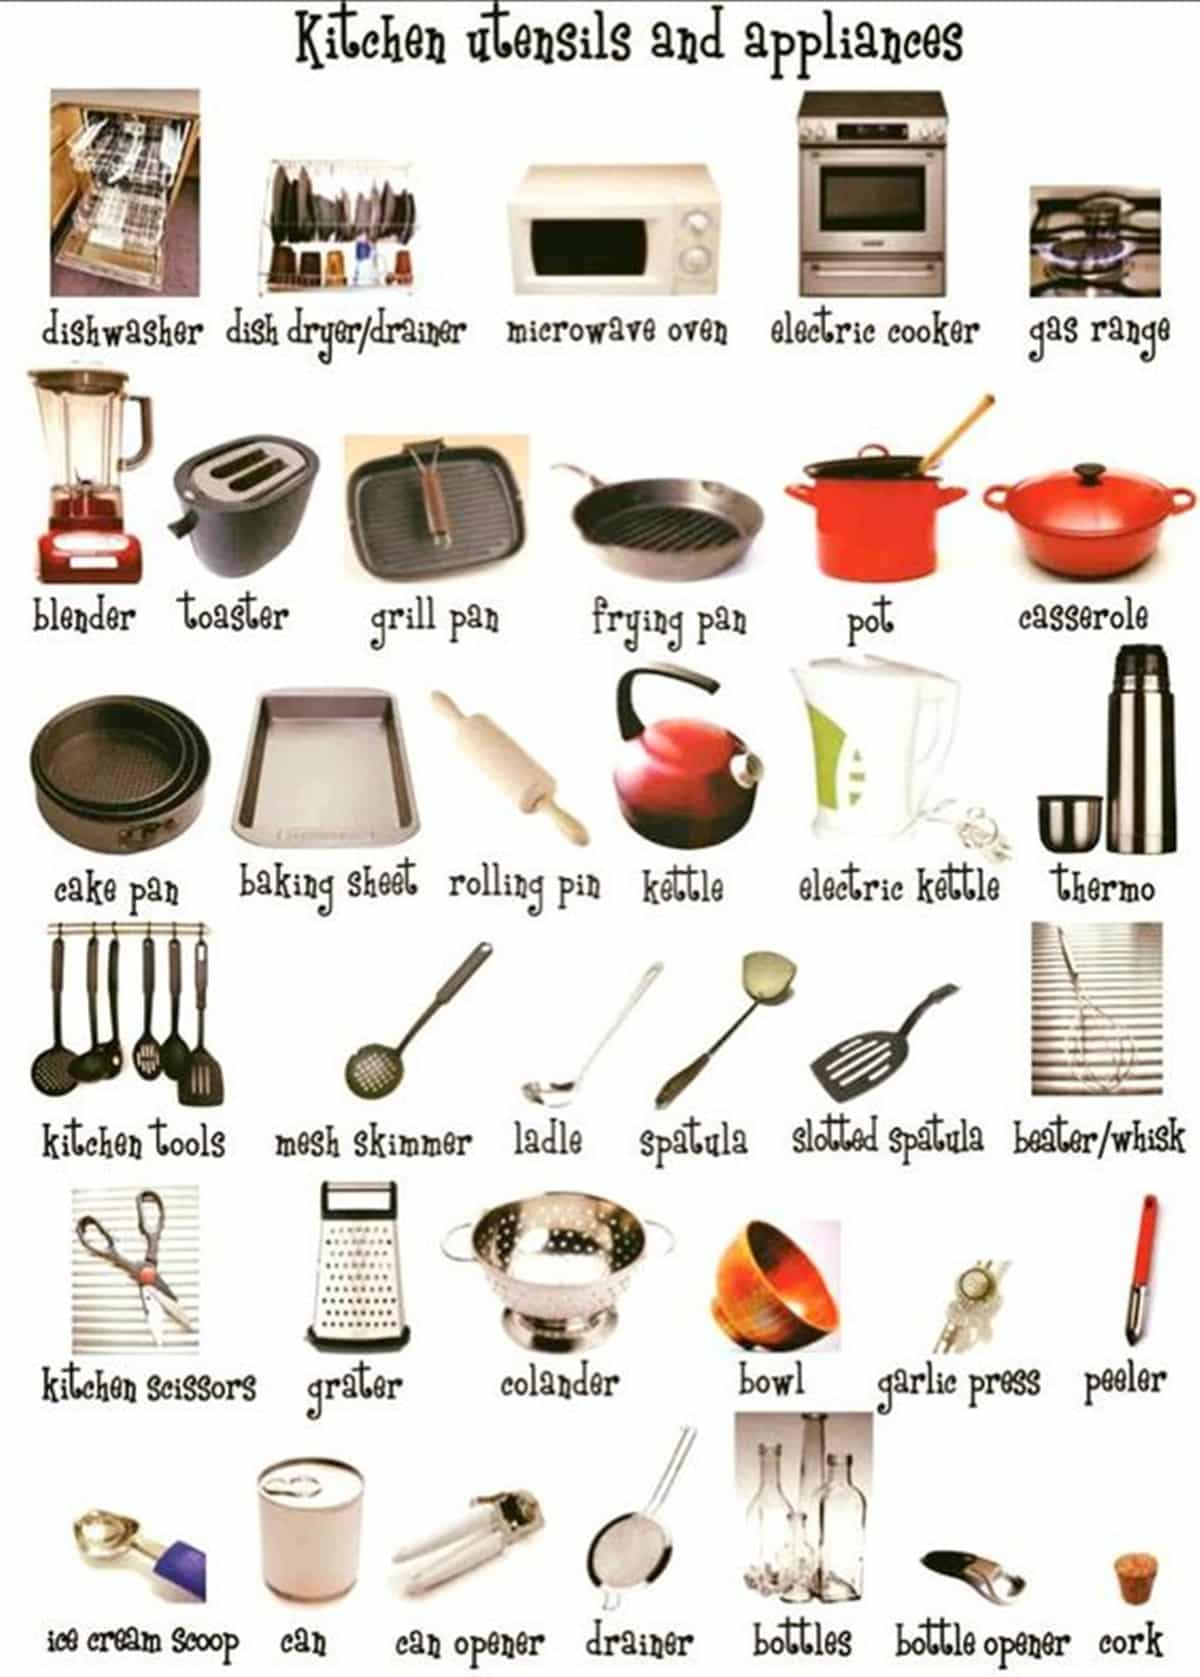 """In the Kitchen"" Vocabulary: 200+ Objects Illustrated 4"